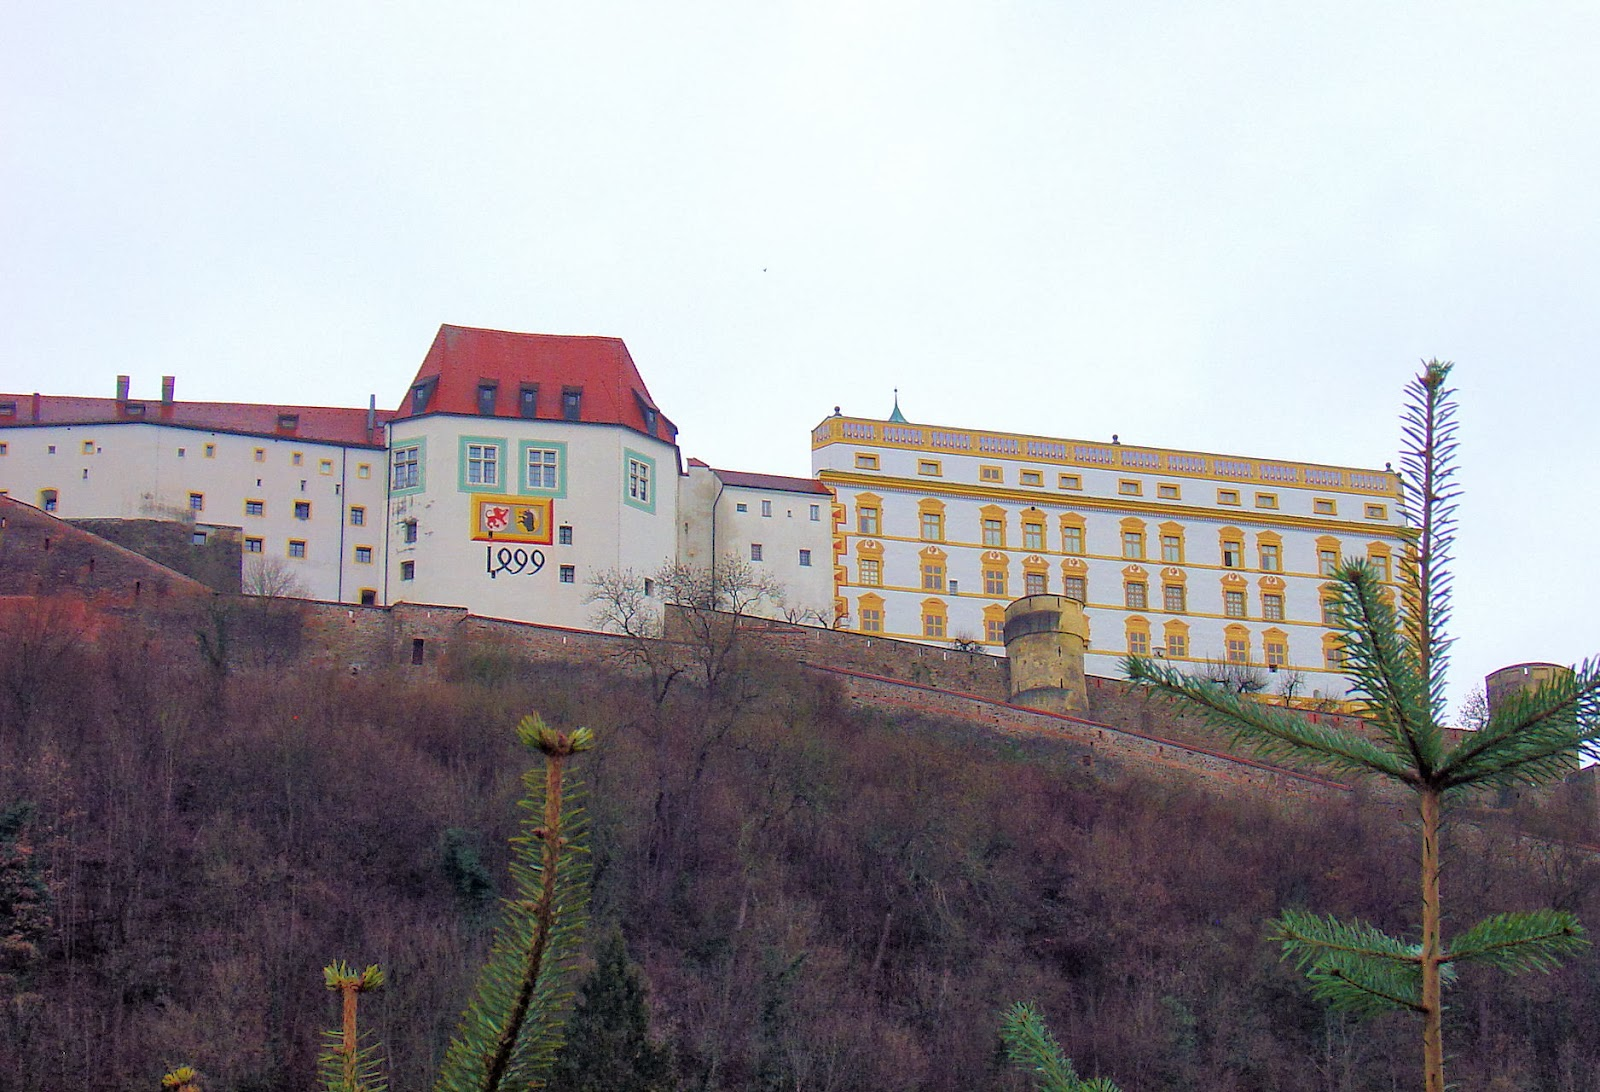 The 13th-century Veste Oberhaus atop the hill on the opposite side of Danube. Look carefully at the year painted on its facade—the second digit is actually a '4' marking the completion of this part of the fortress in 1499.